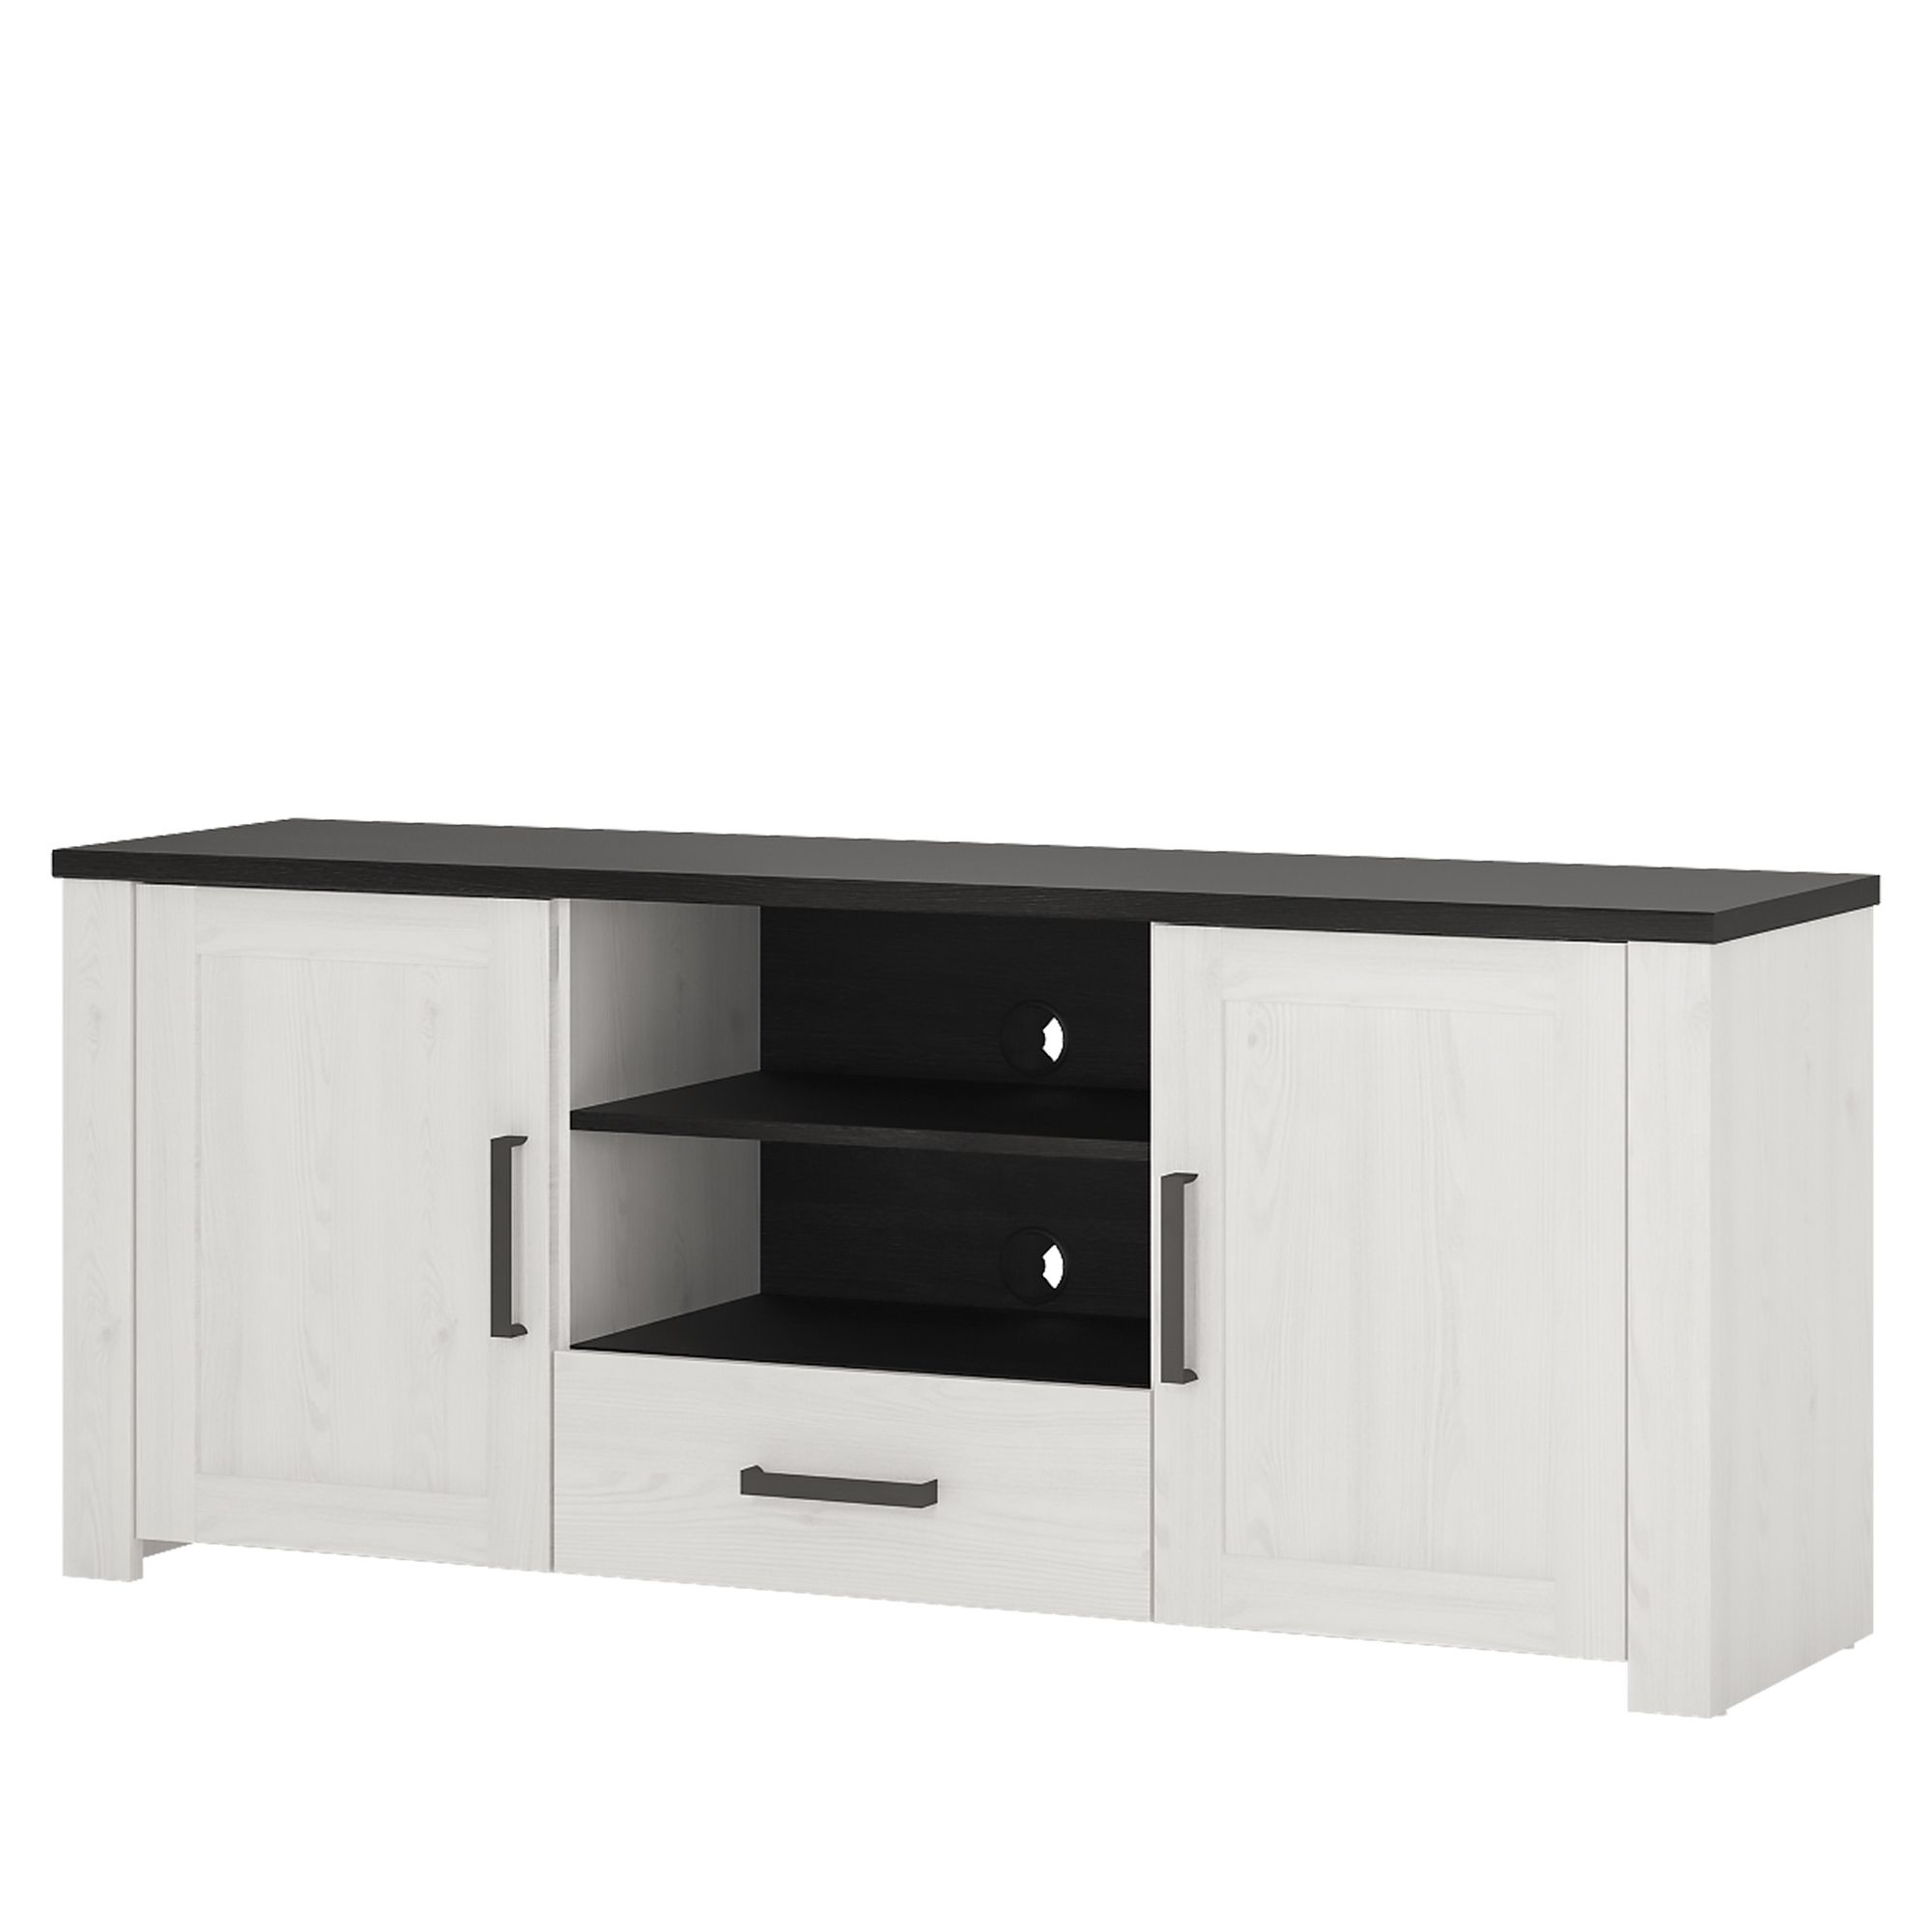 Provence High Tv Cabinet 2 Door 1 Drawer With Regard To Tiva Ladder Tv Stands (View 5 of 11)